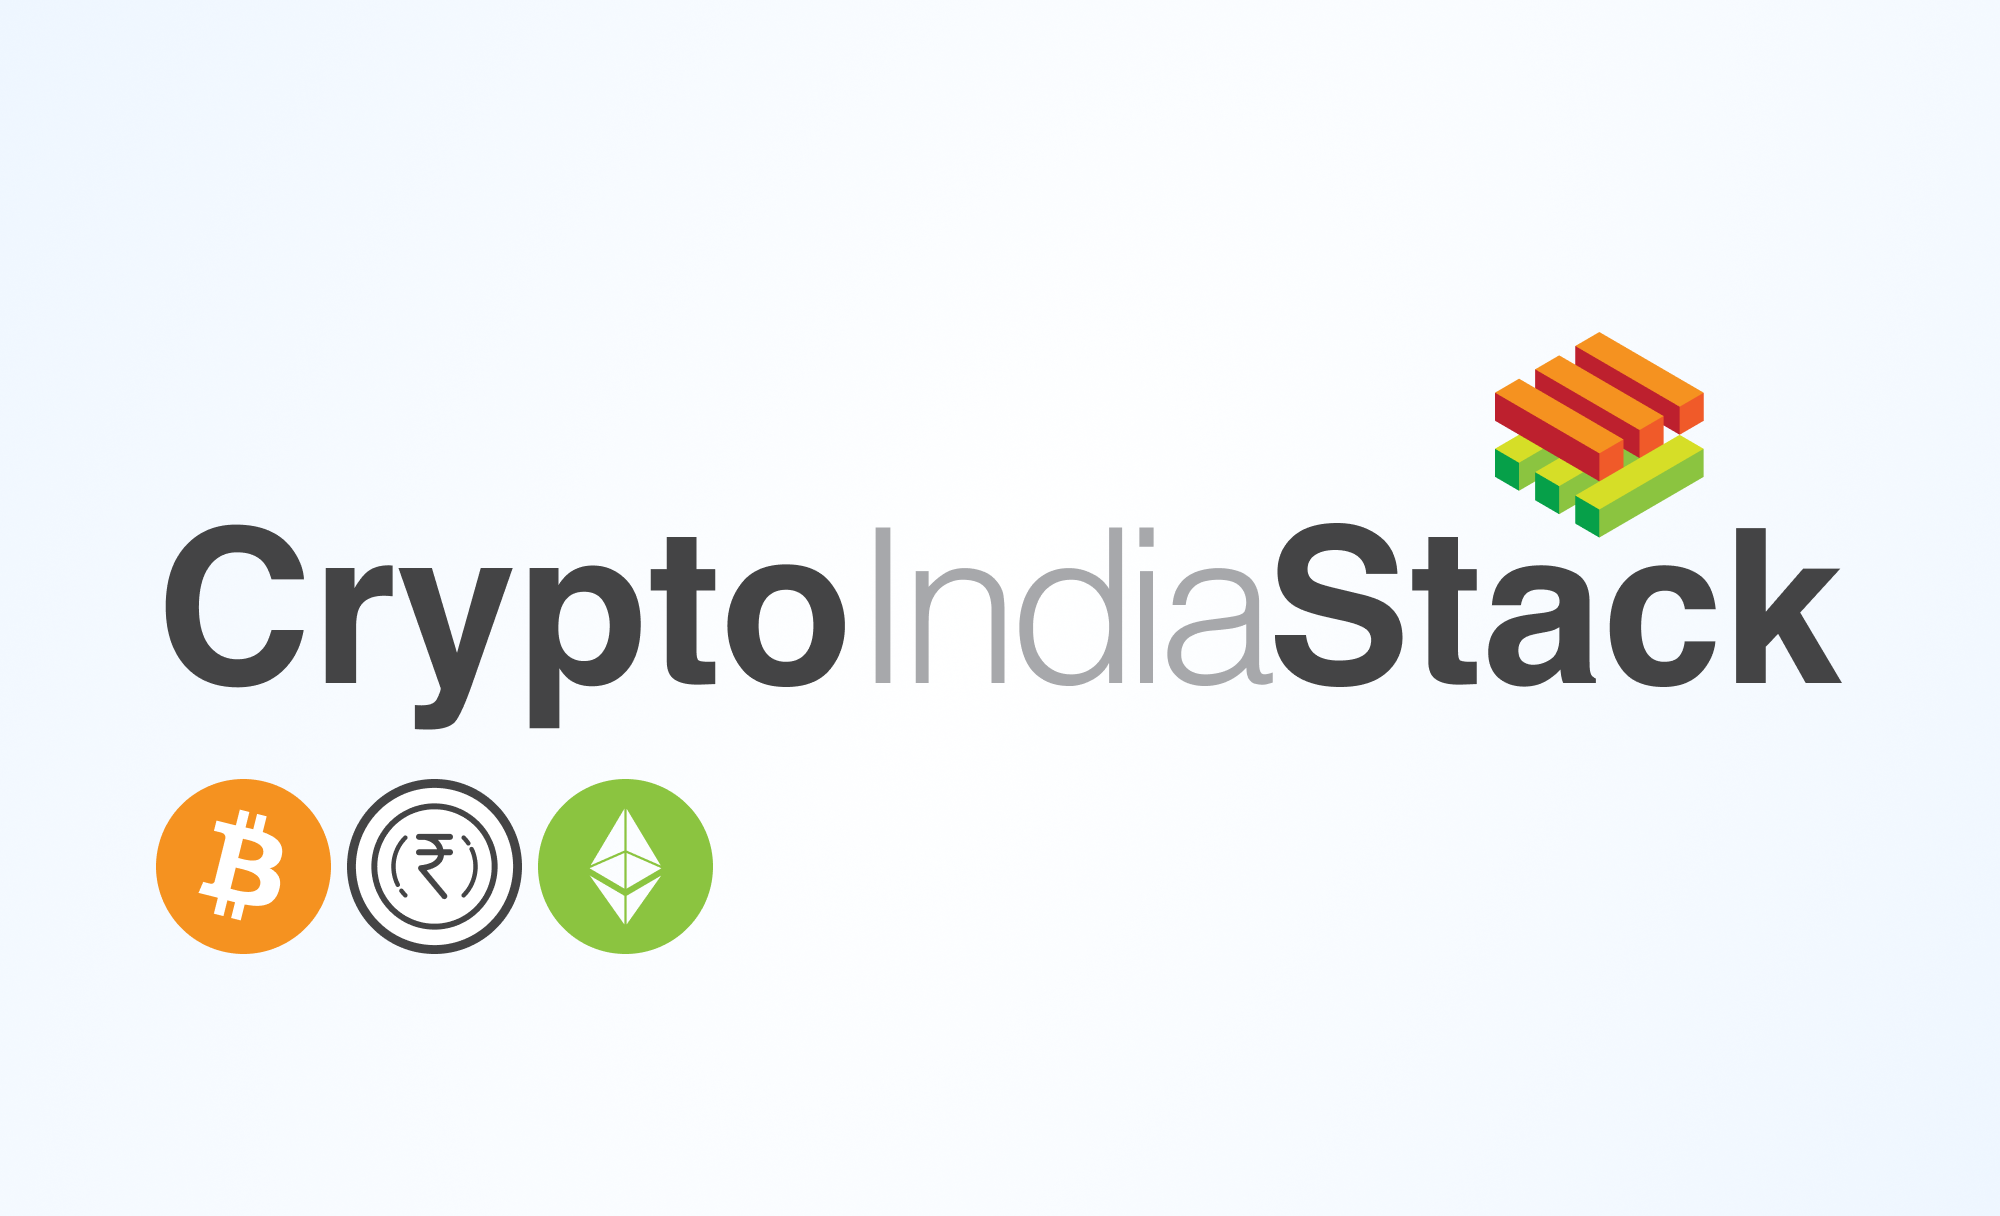 Add Crypto to IndiaStack